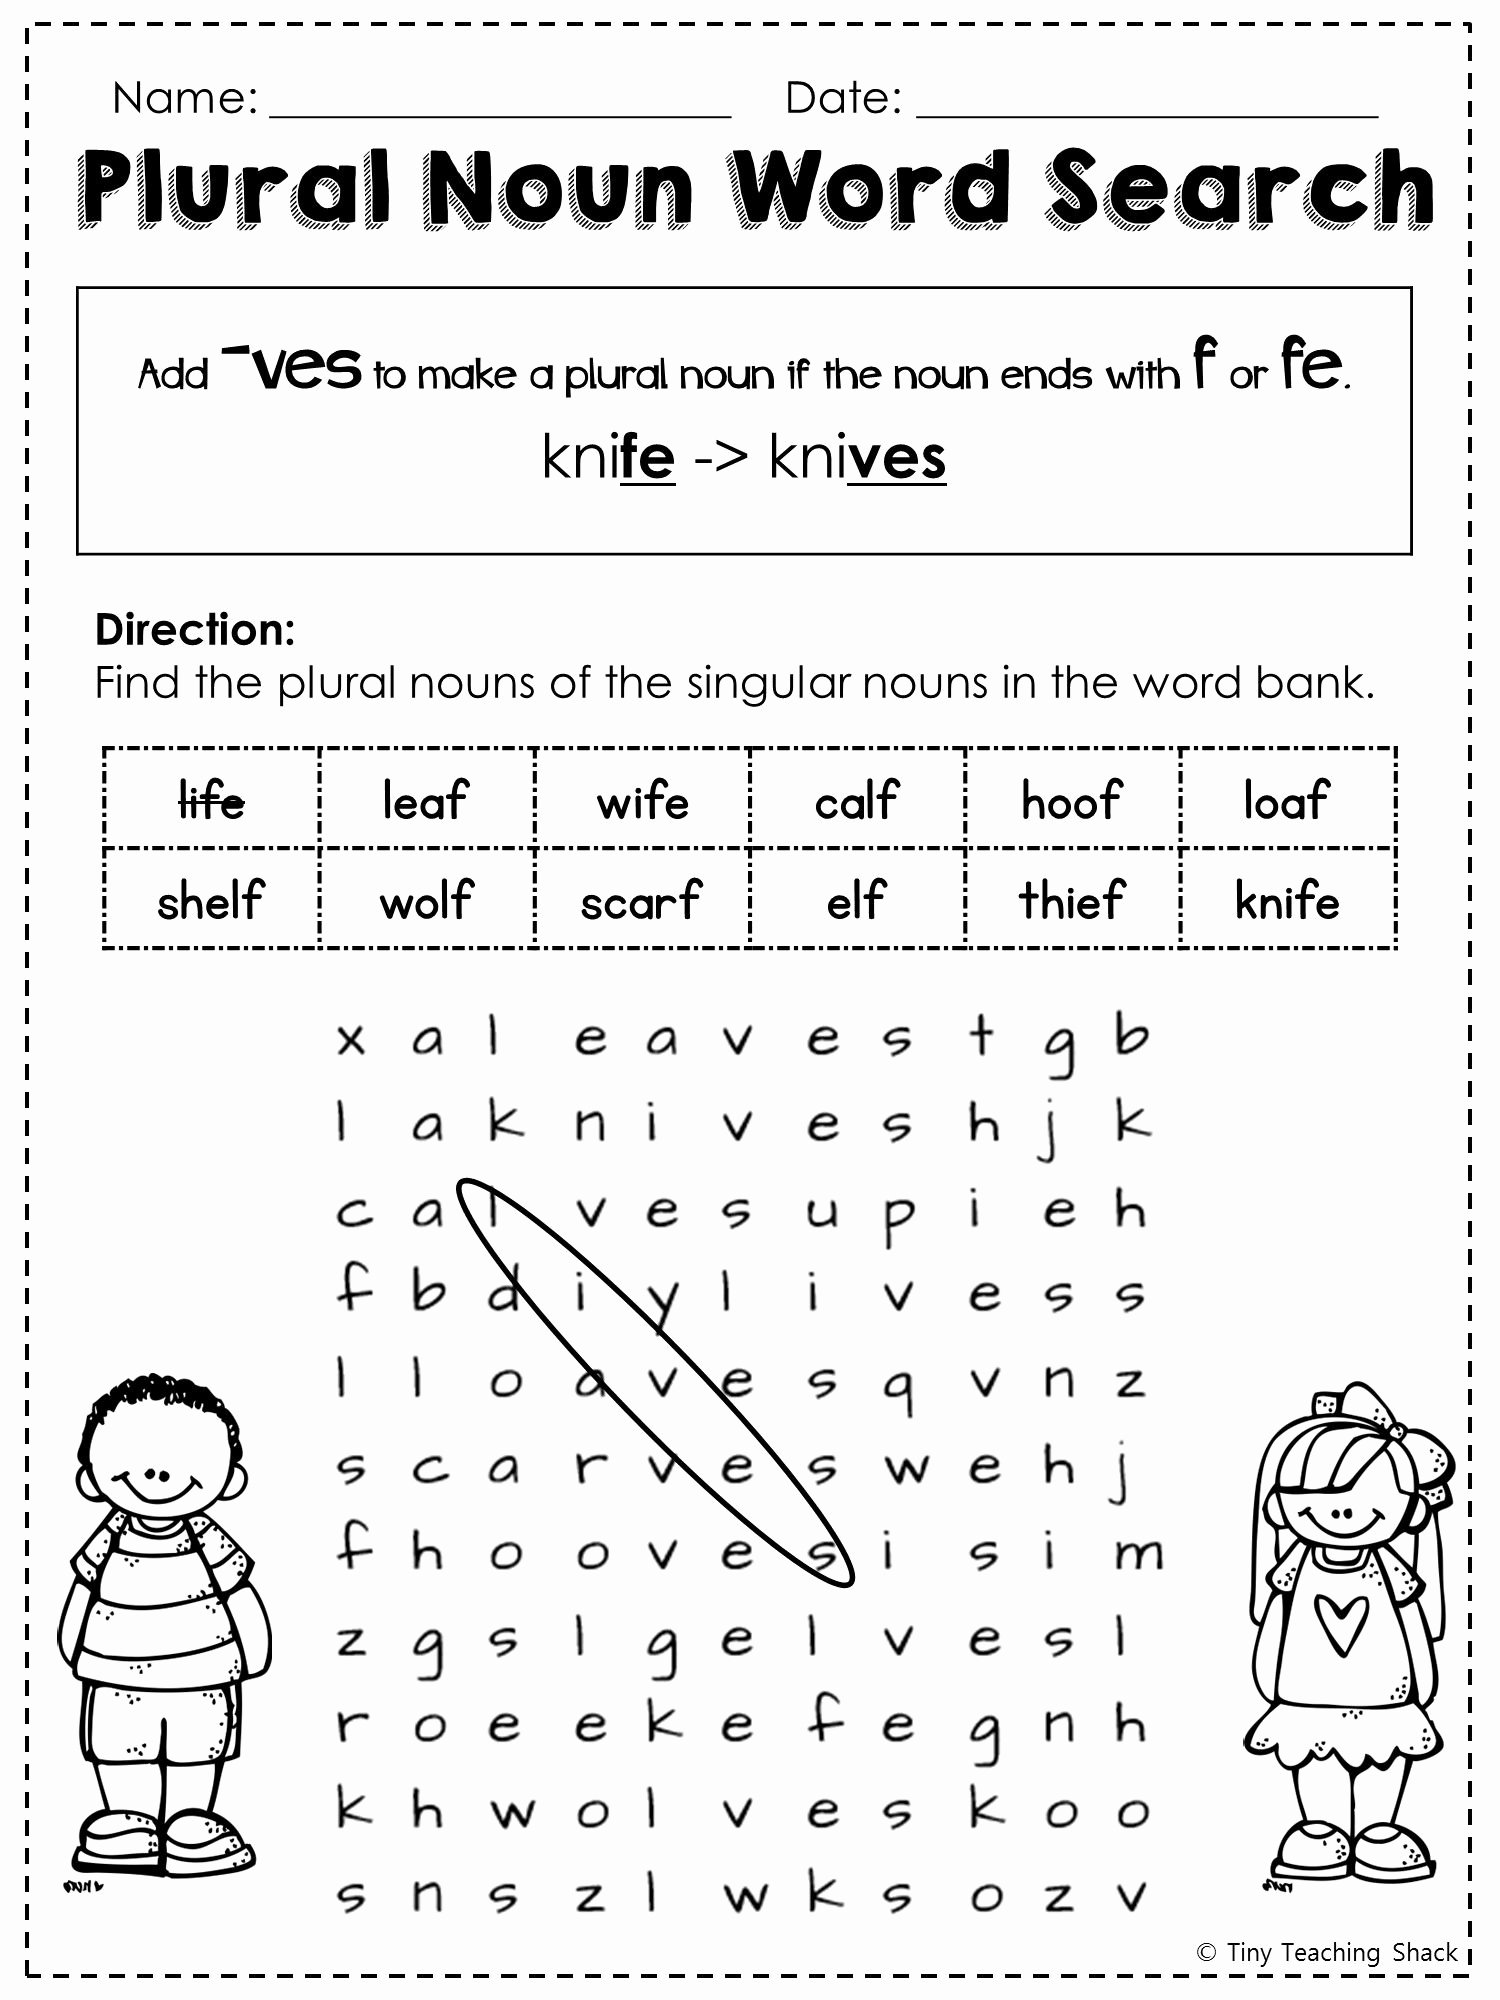 Irregular Plural Nouns Worksheet Best Of Free Irregular Plural Noun Word Search …